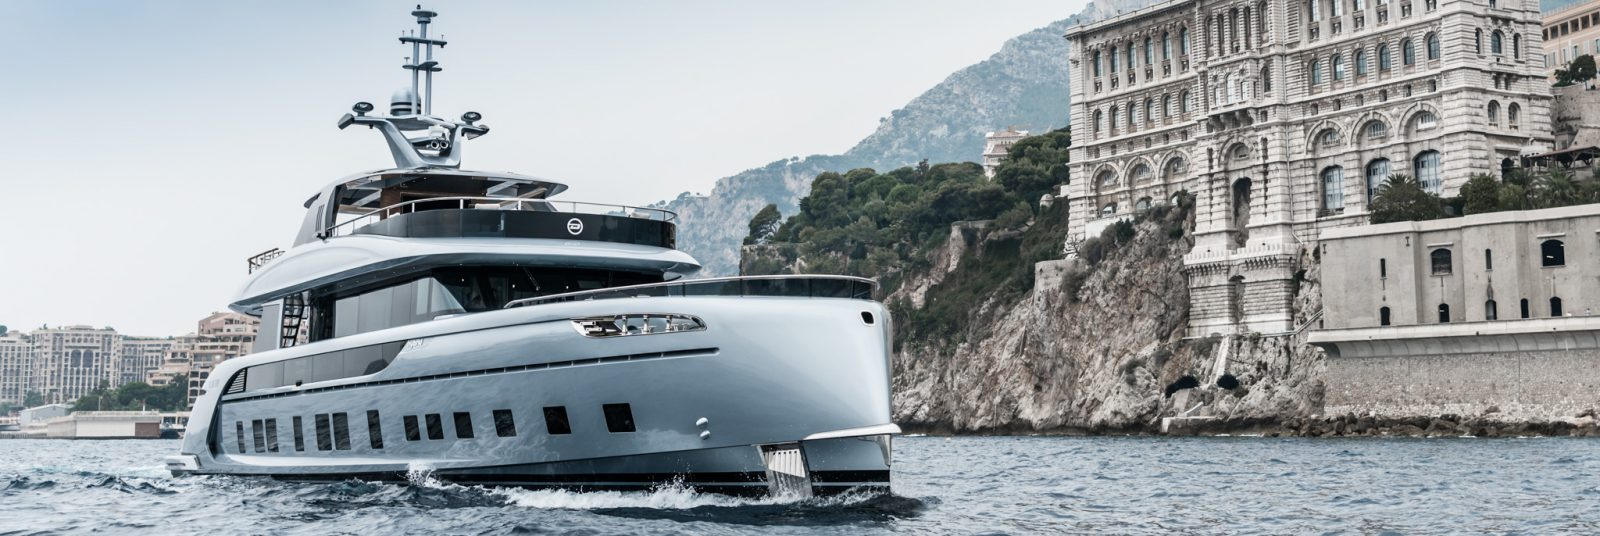 Modern superyacht for sale cruising off the coast of Monaco